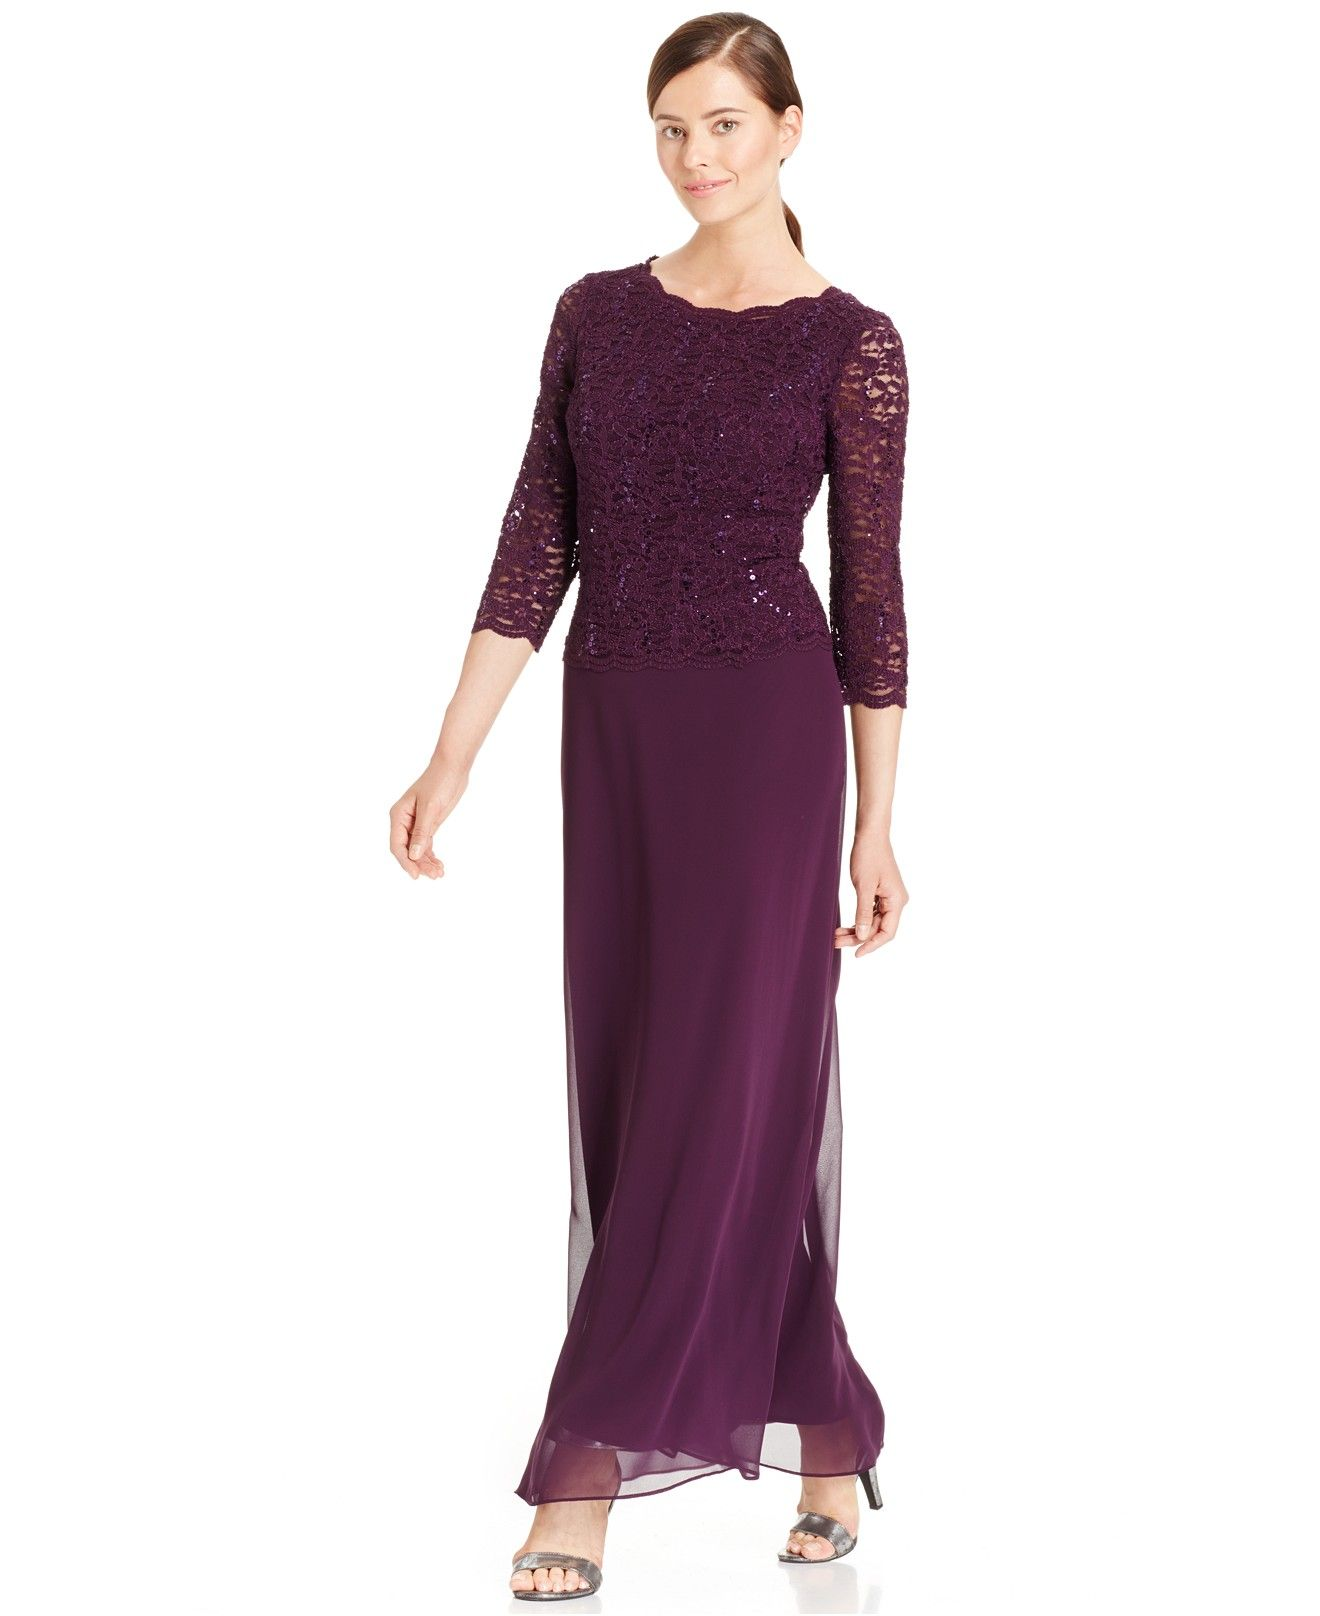 f71d58c17c0 Alex Evenings Elbow-Sleeve Sequined Lace Gown - Dresses - Women - Macy s